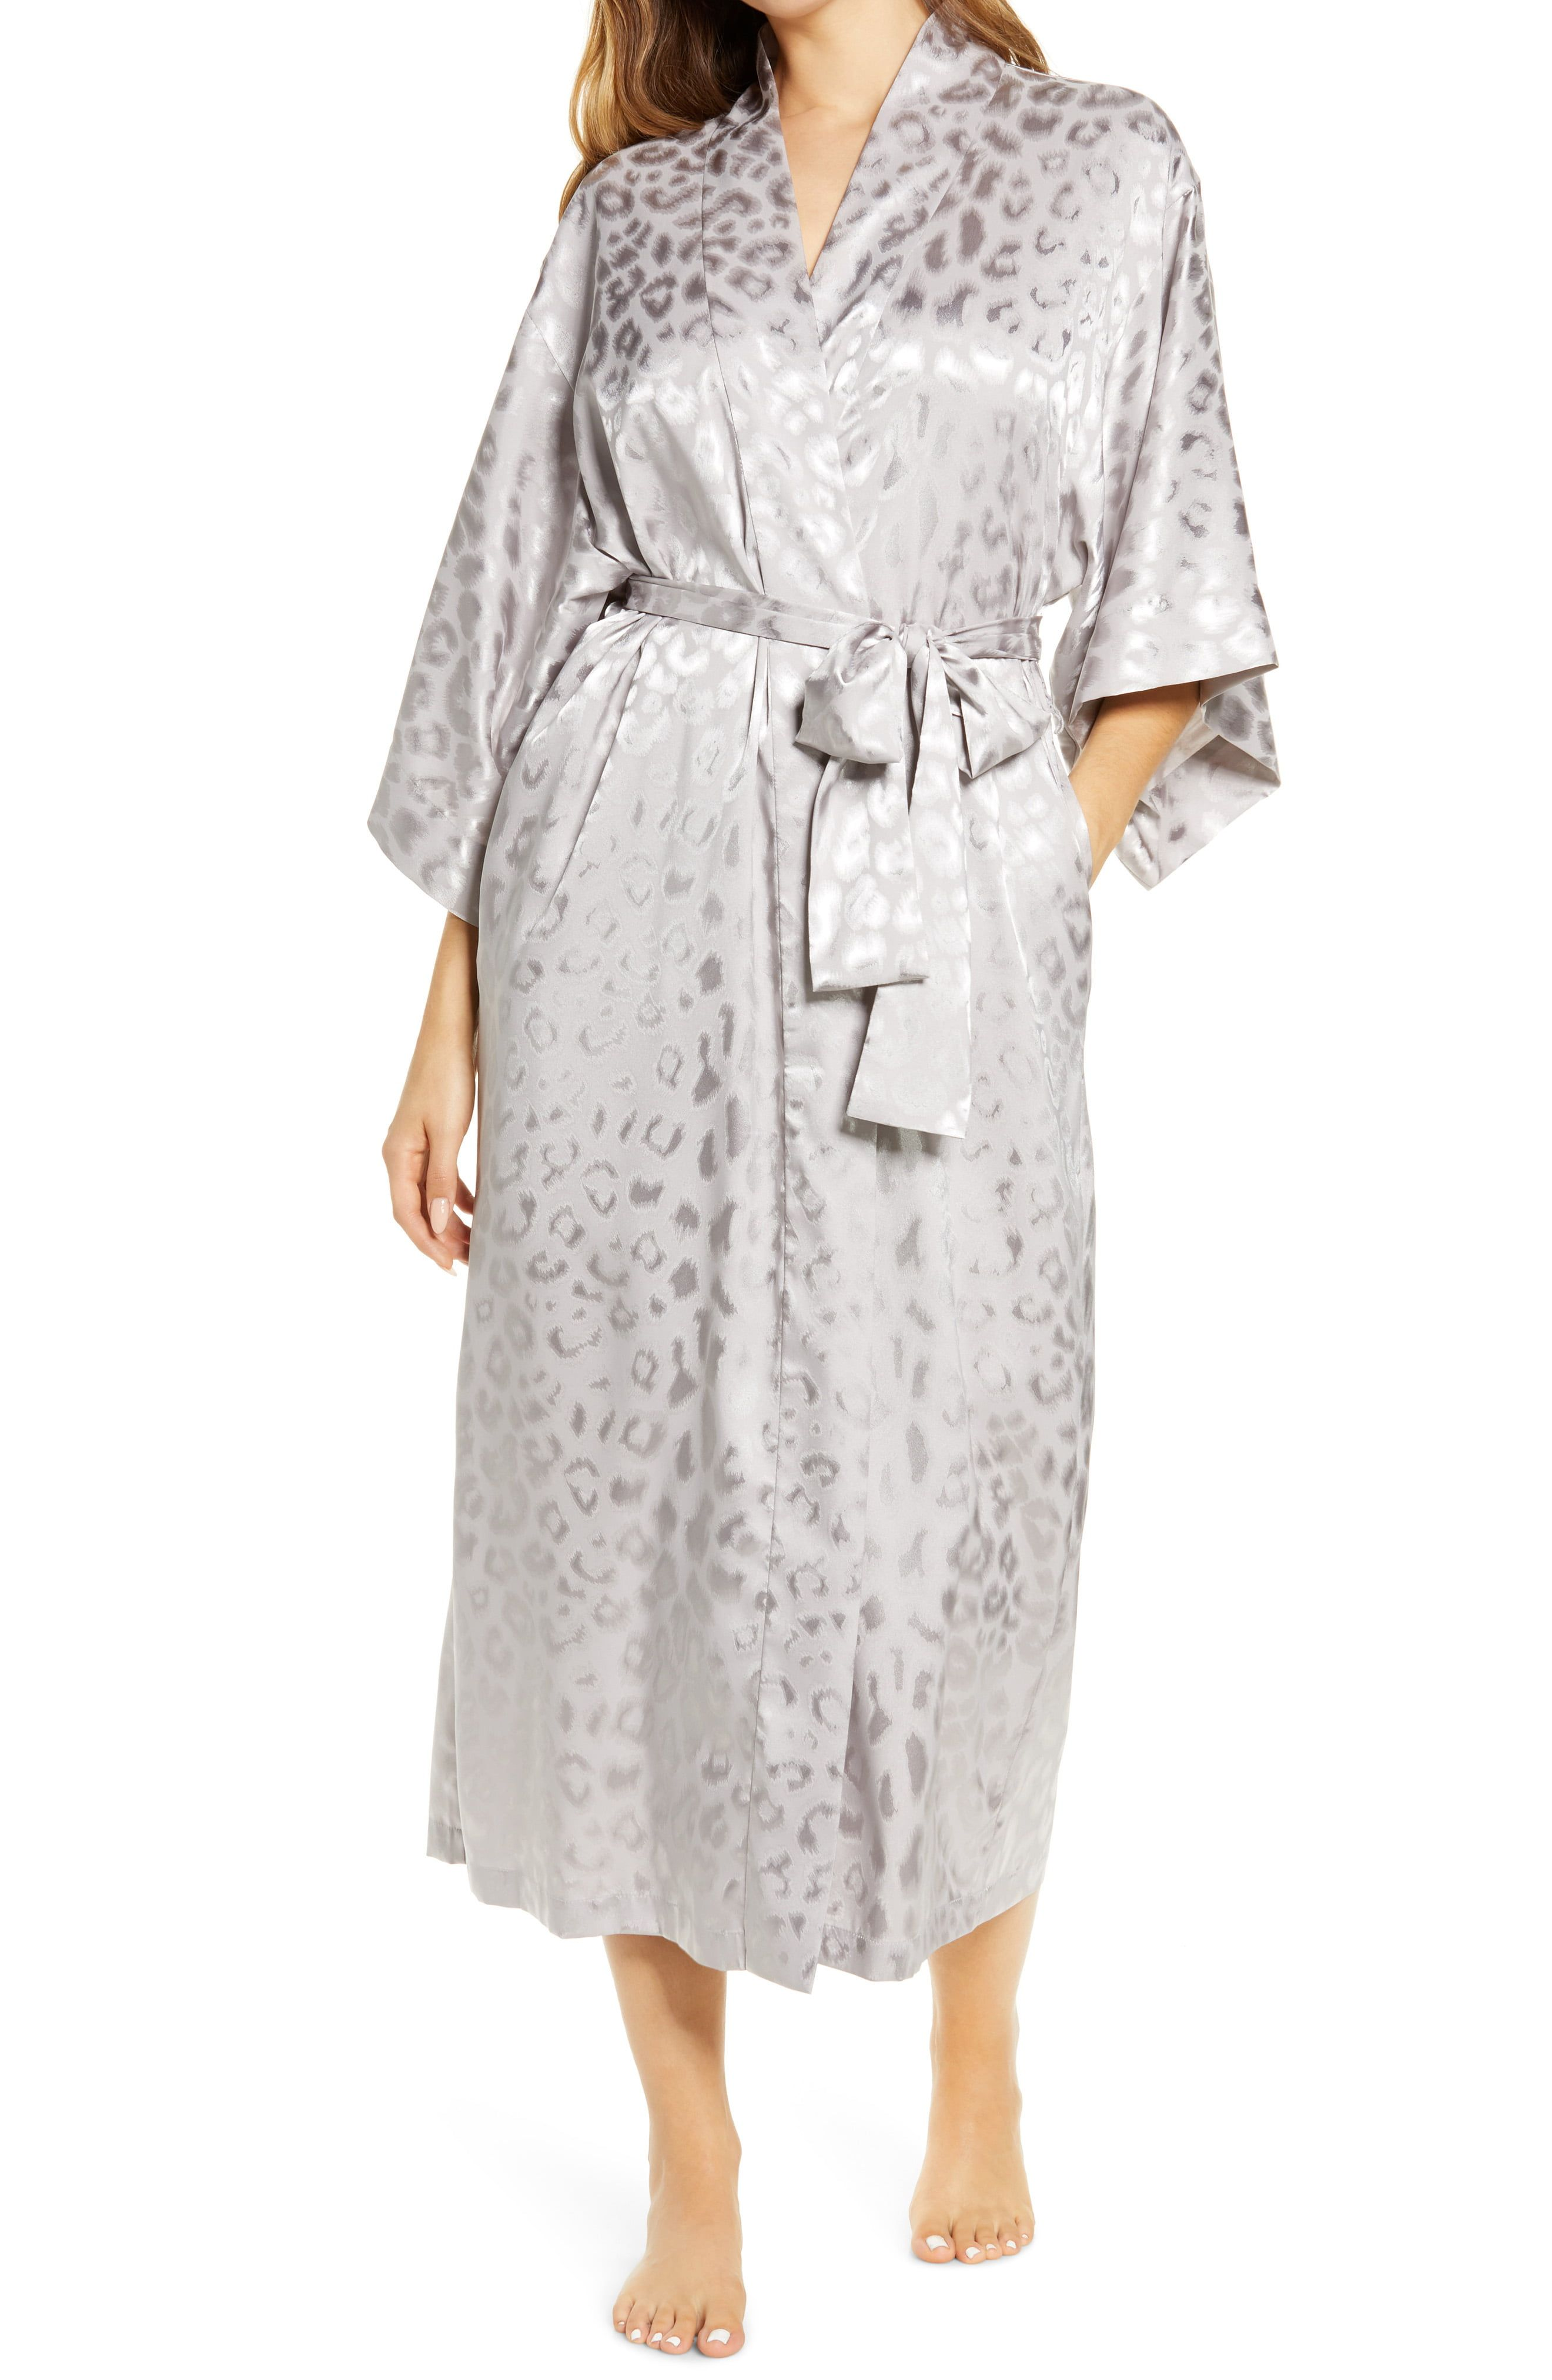 Relax in true elegance in this long kimono-inspired robe shaped from silky, drapey stretch-satin with radiant leopard jacquard motif. Style Name:Natori Decadence Leopard Jacquard Satin Robe. Style Number: 6114055. Available in stores.